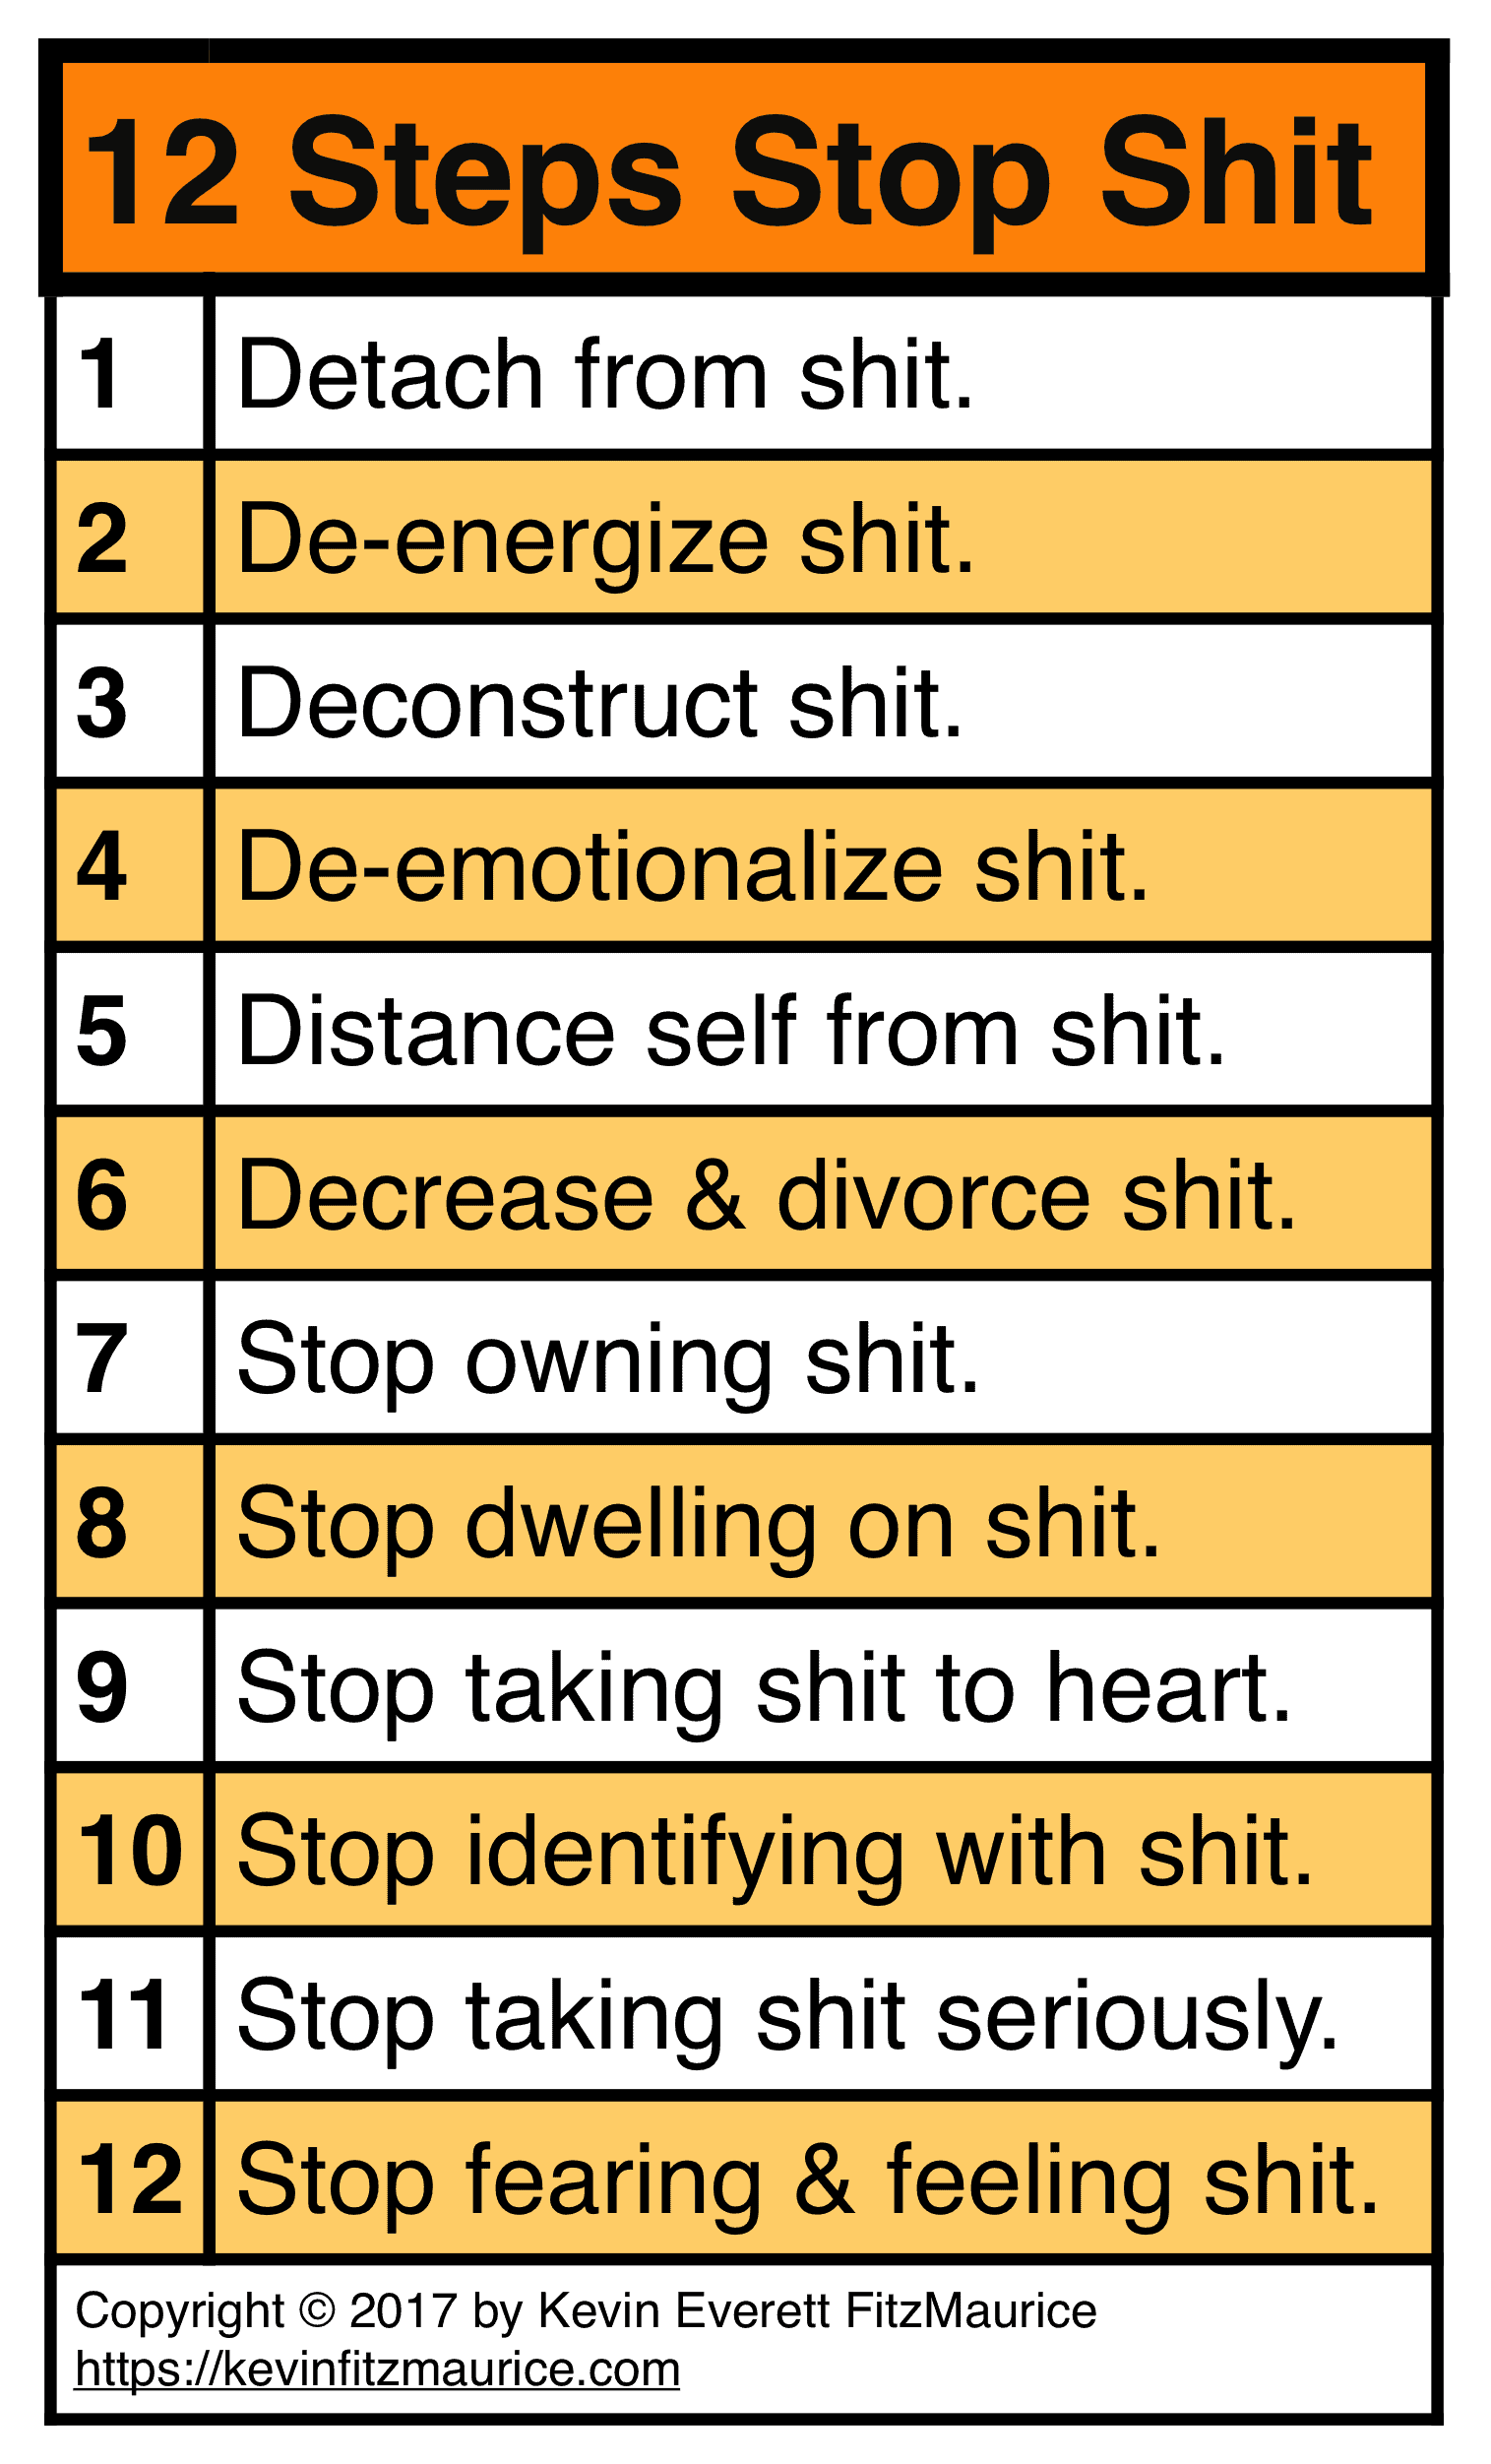 12 Steps Stop Shit